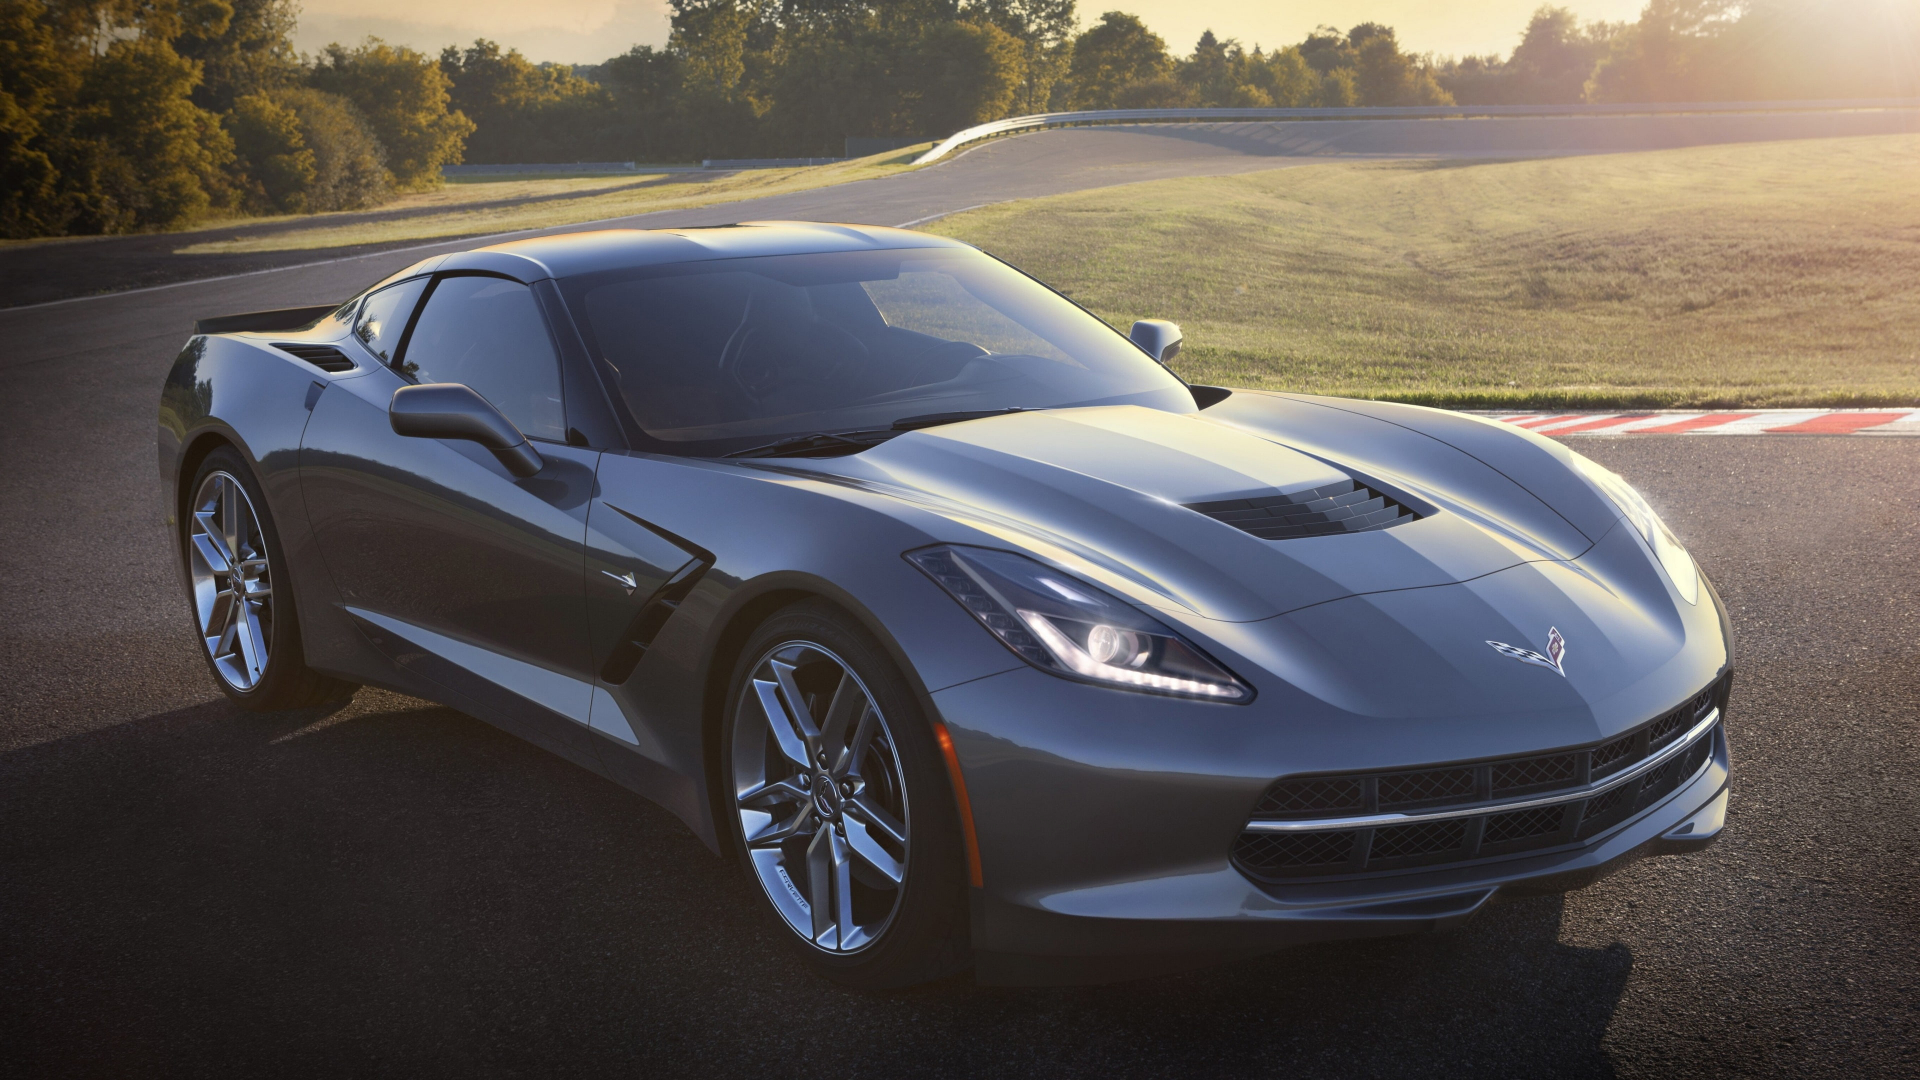 Cool Corvette Wallpapers